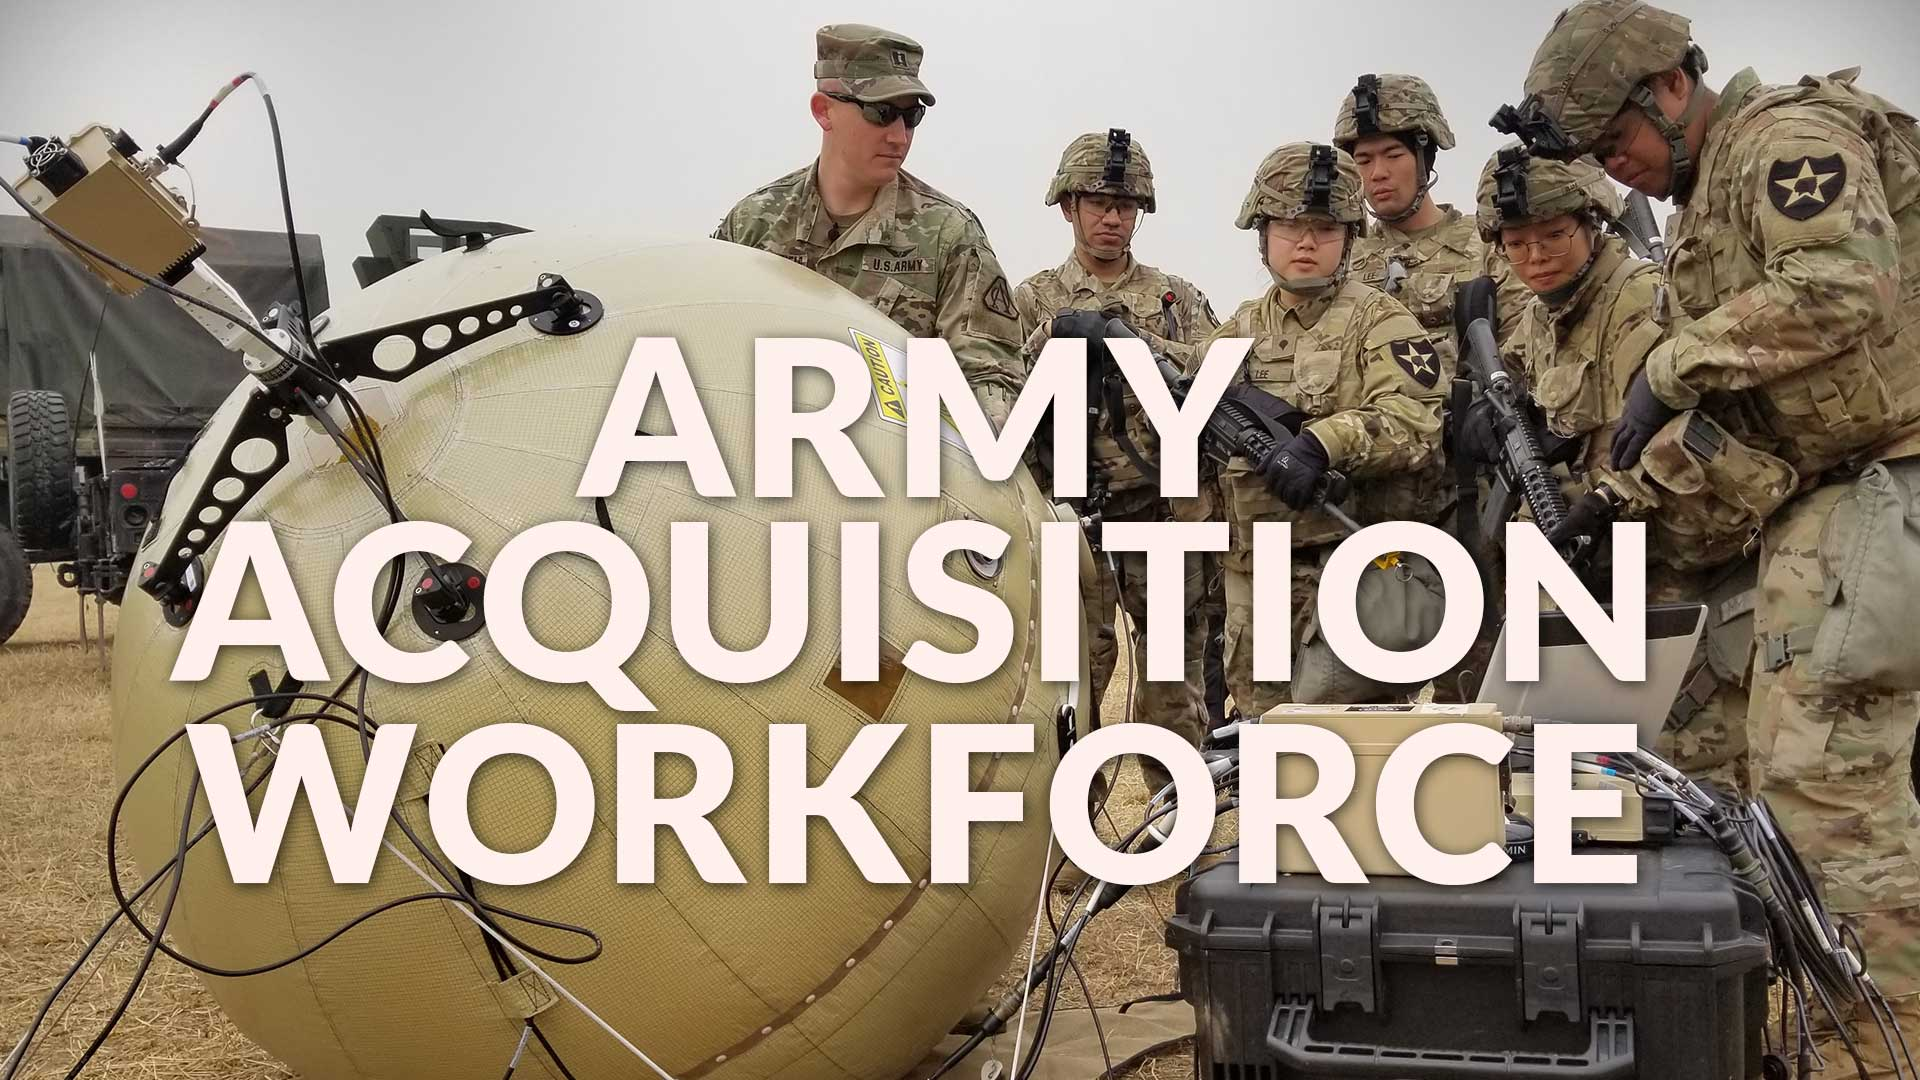 Army Acquisition Workforce